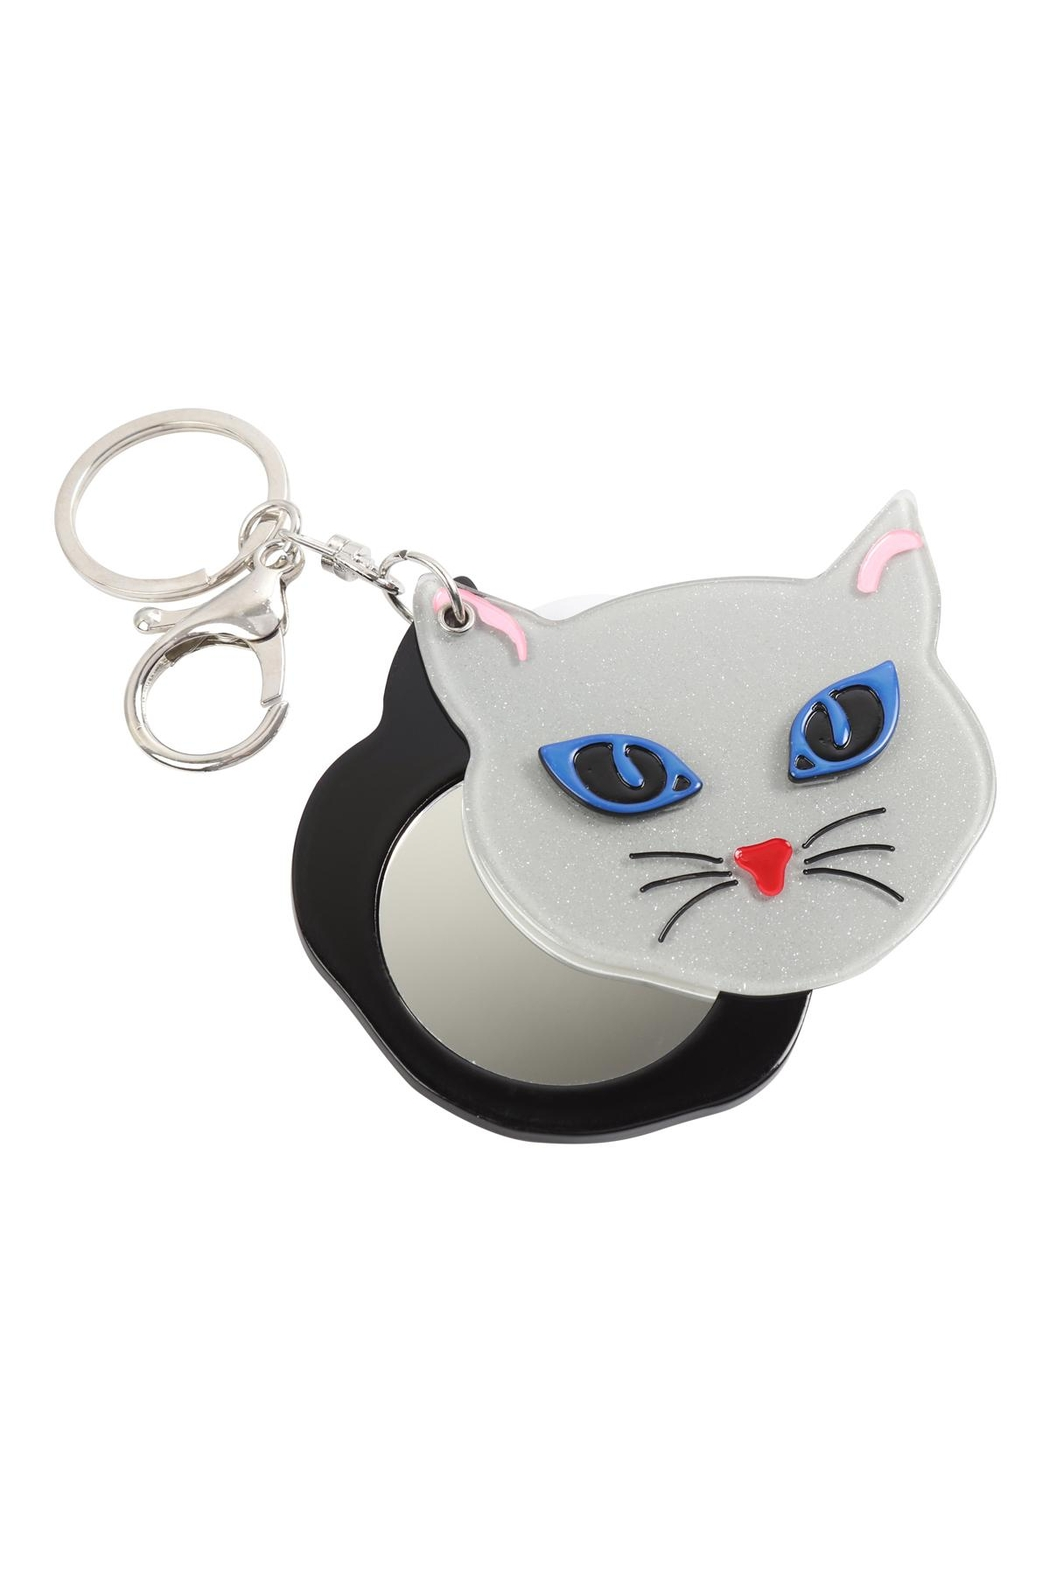 Riah Fashion Gray/white-Assorted-Cat-W/-Mirror-Keychain - Side Cropped Image